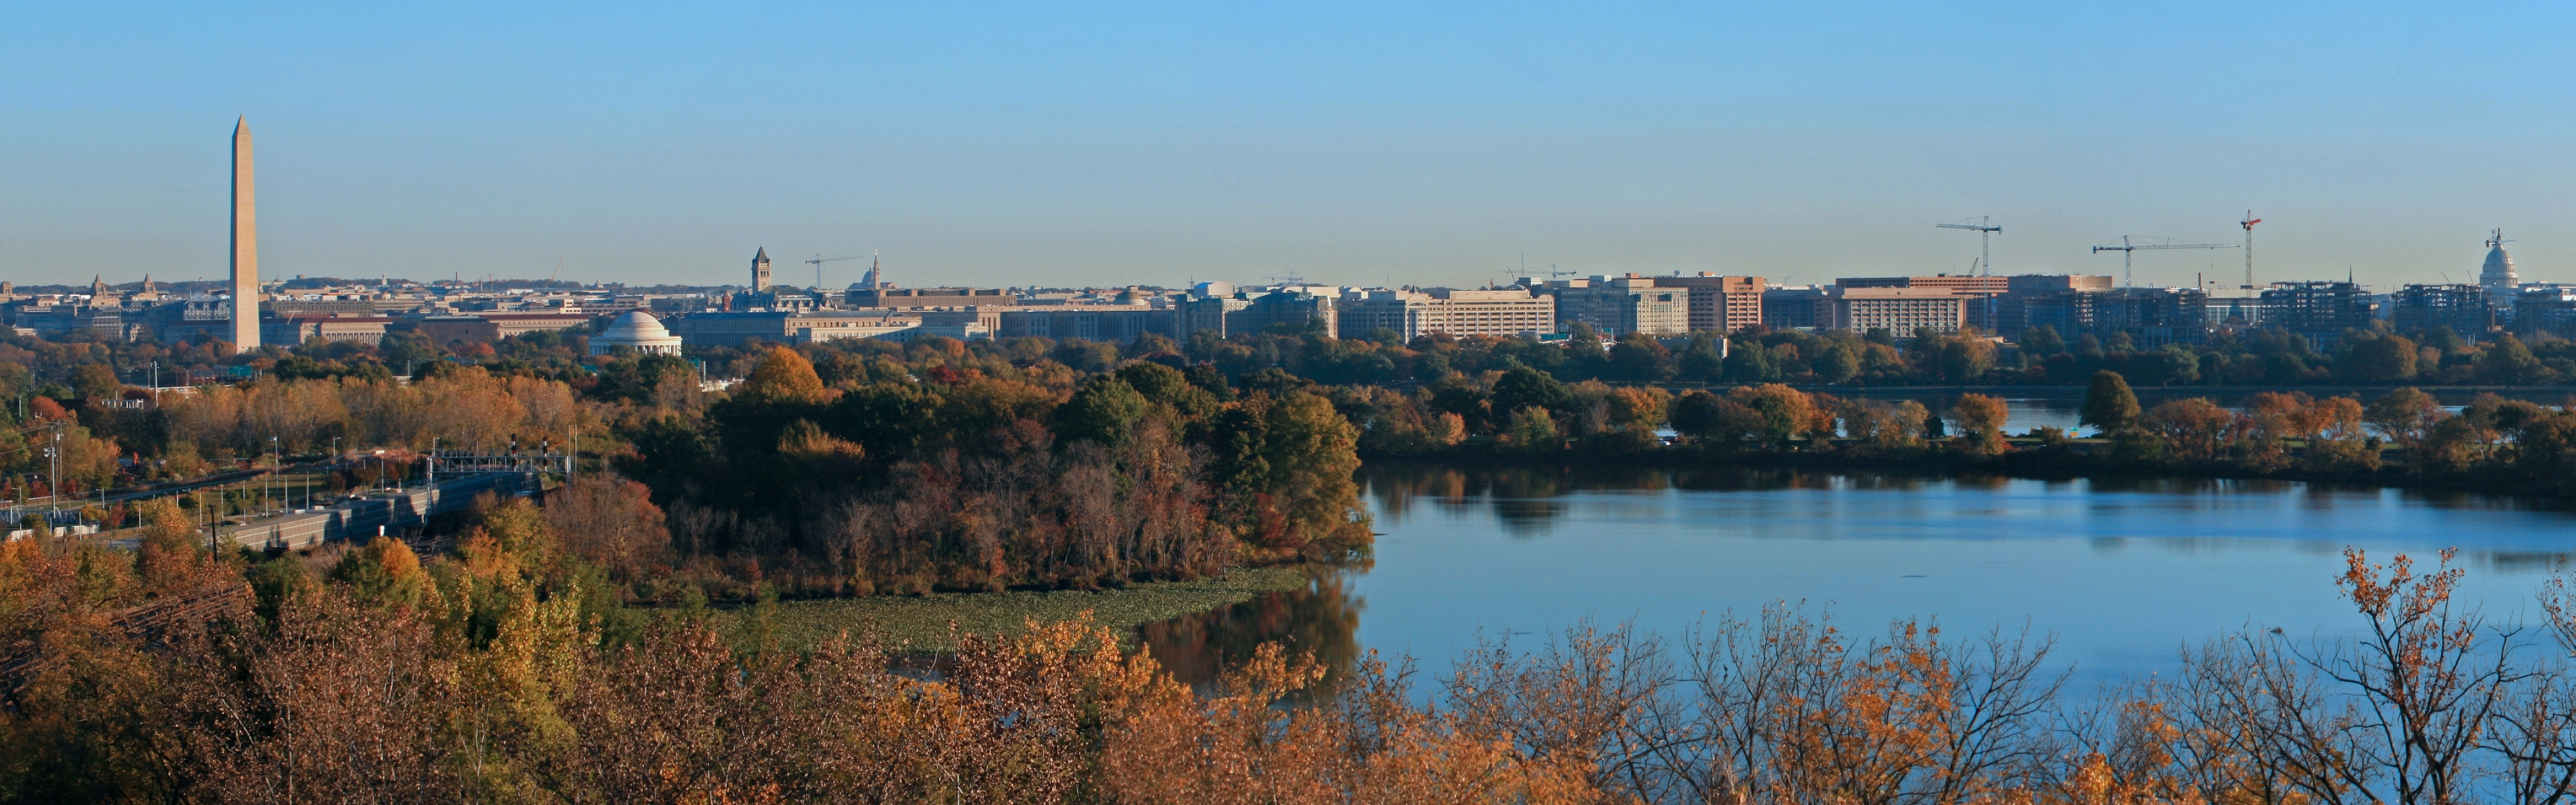 Washington DC in the Fall